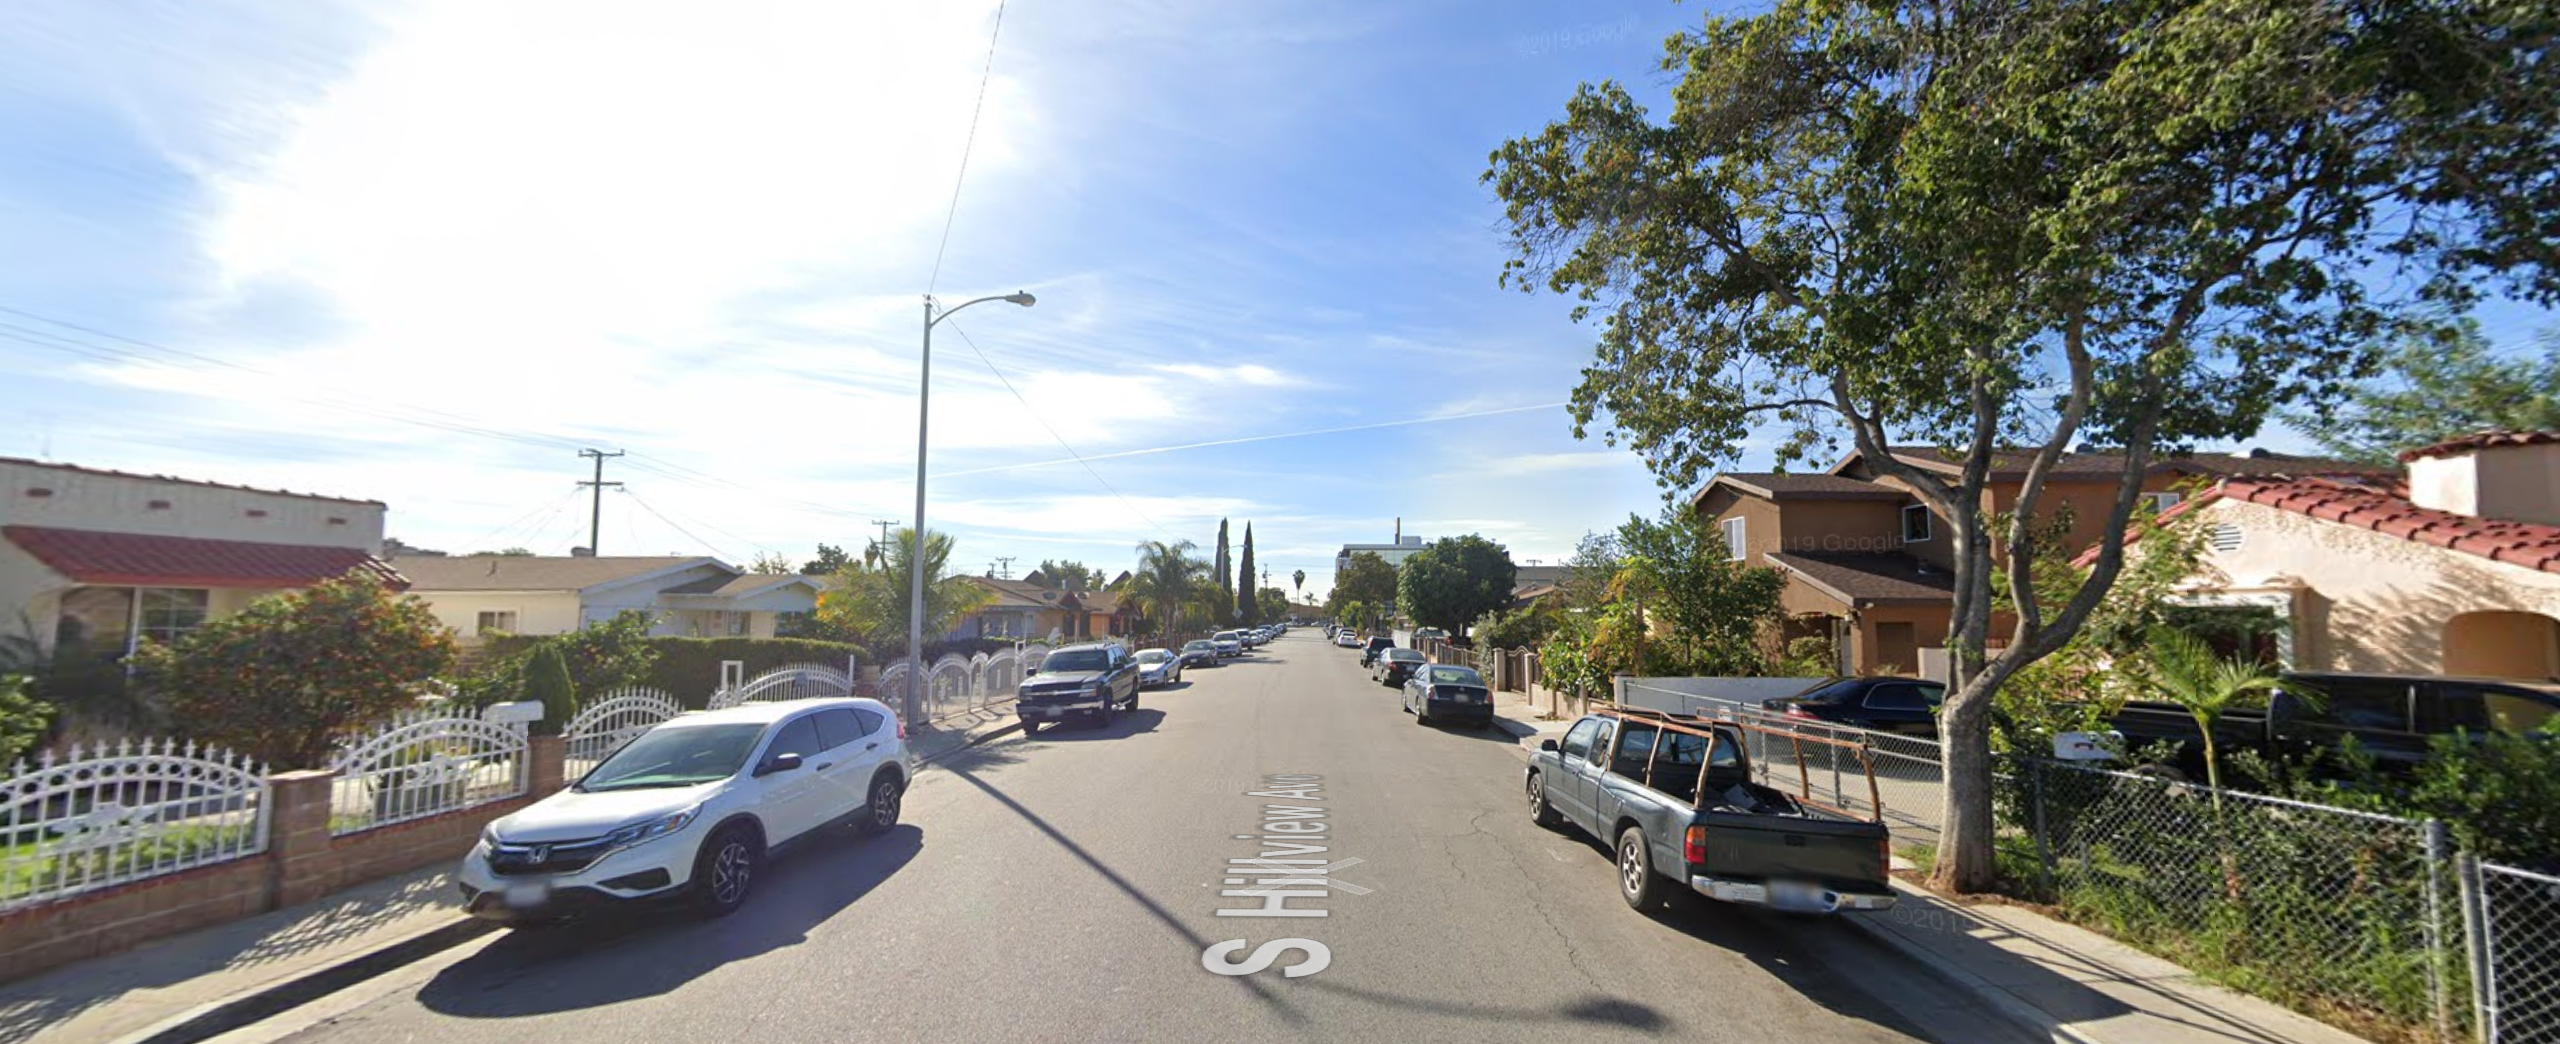 The 700 block South Hillview Avenue in East Los Angeles is seen in an undated photo from Google Maps street view.